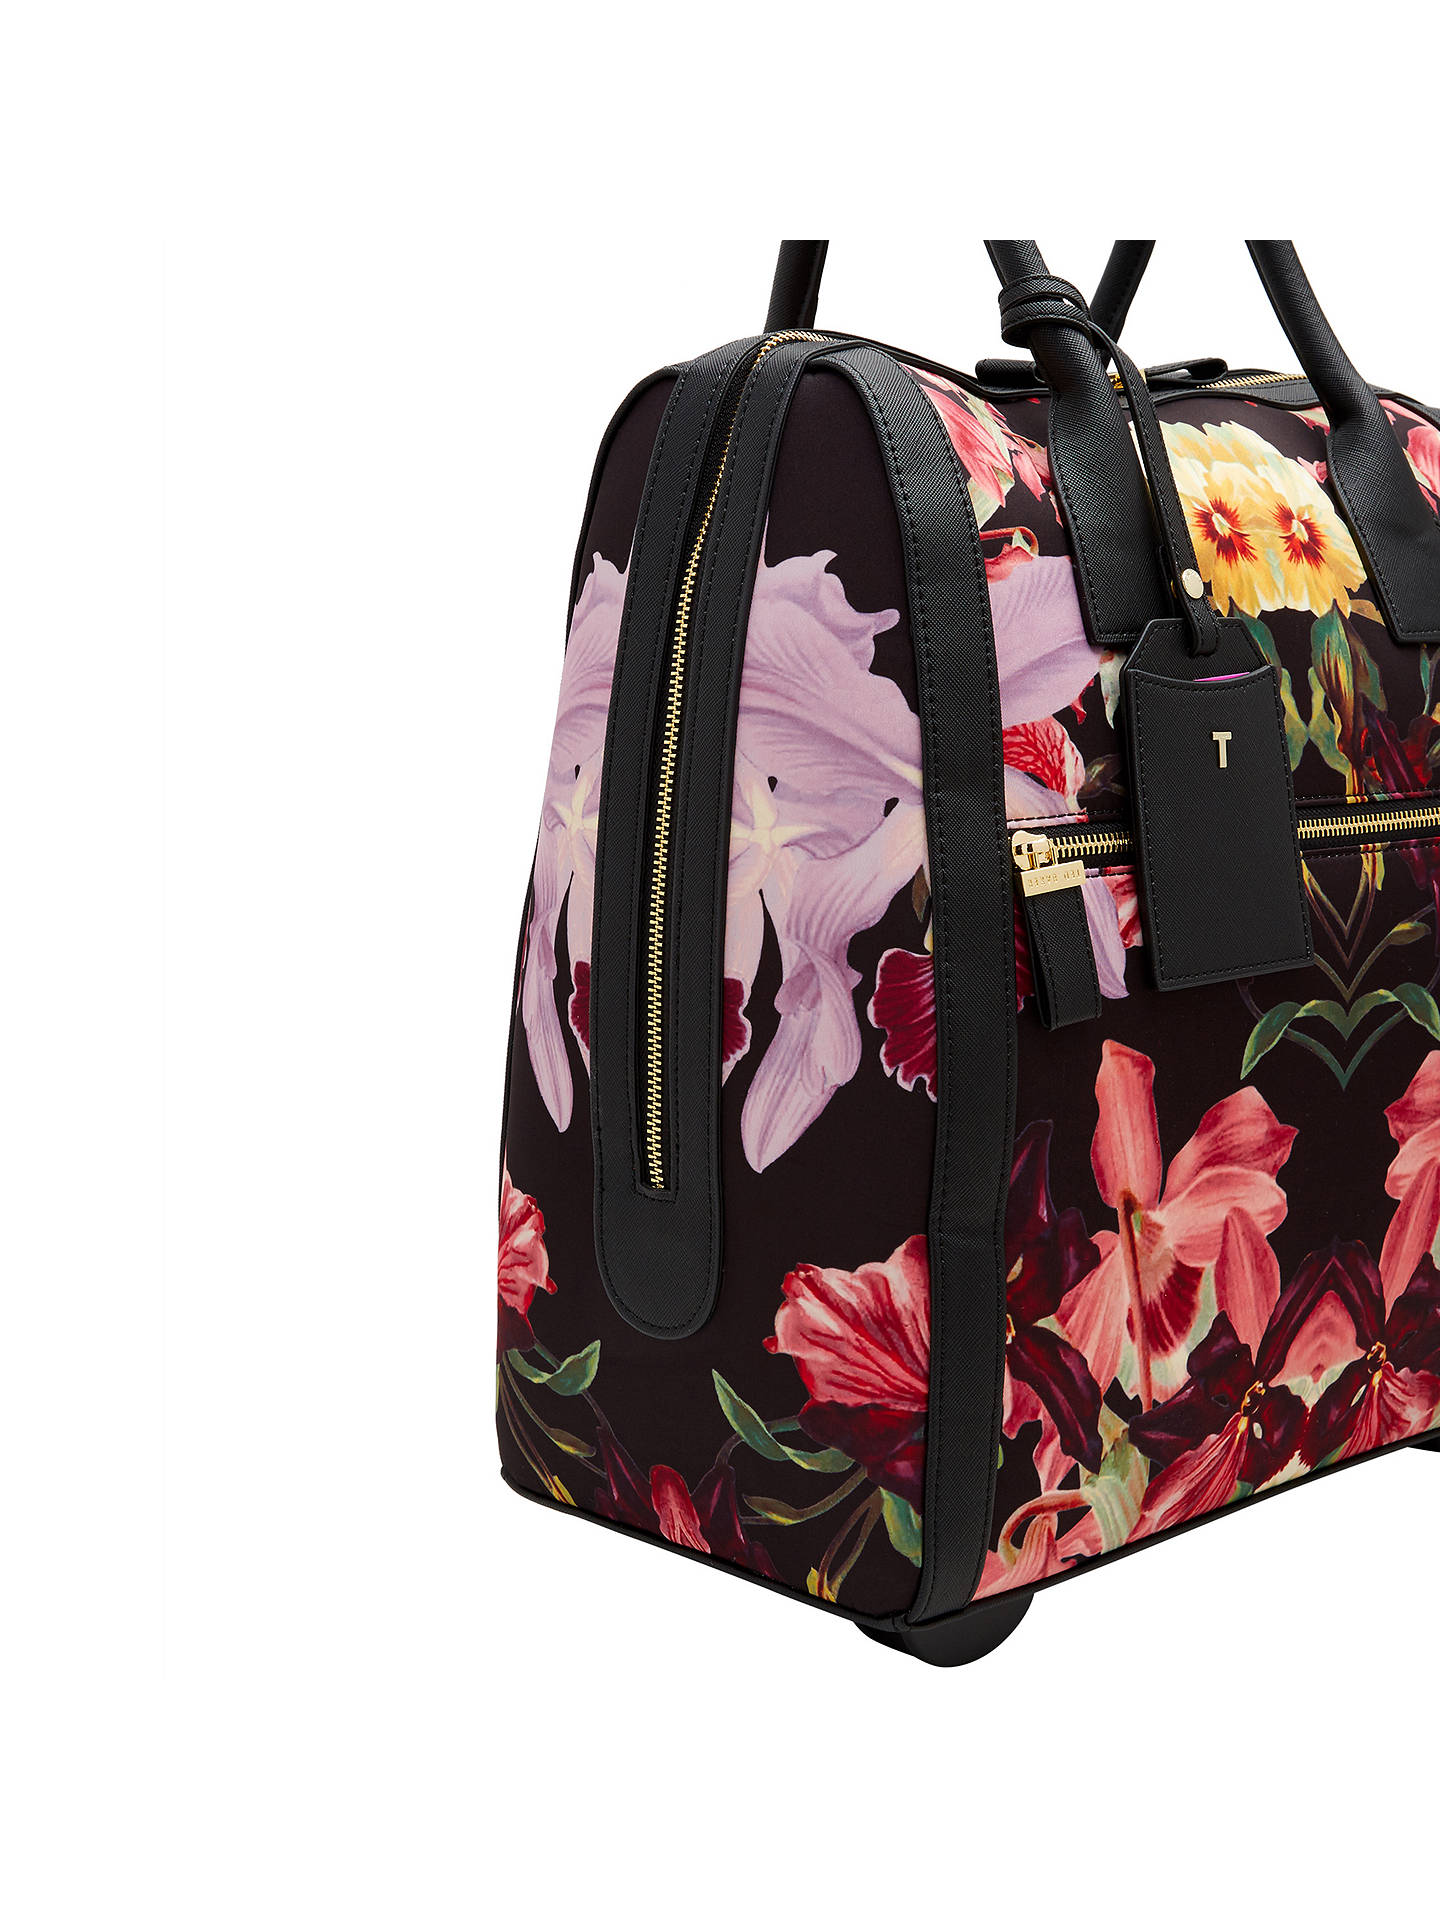 98e73a309 ... Buy Ted Baker Donnie Lost Gardens Travel Bag